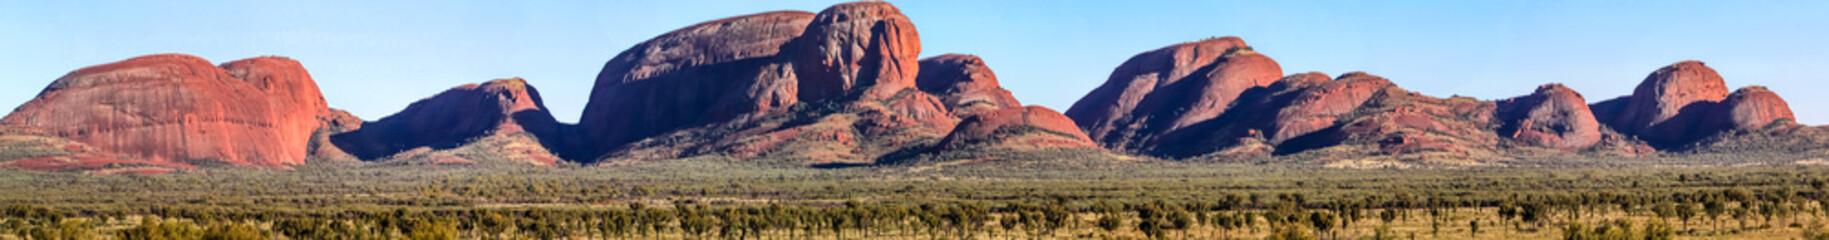 Panorama view rock formations in the Red Centre, Australia